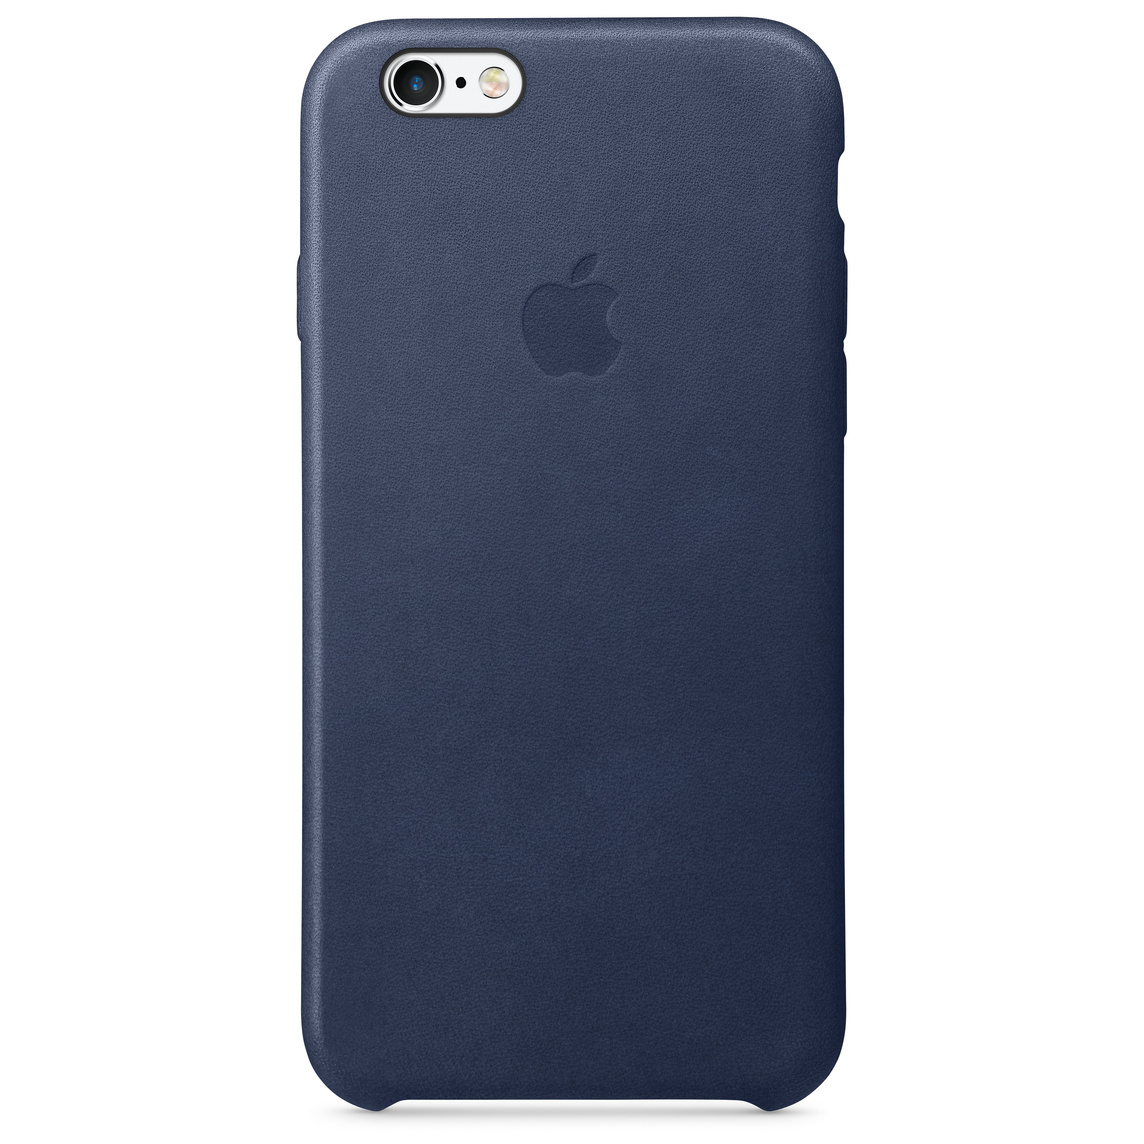 exquisite design how to buy new cheap Coque en cuir pour iPhone 6/6s - Bleu nuit